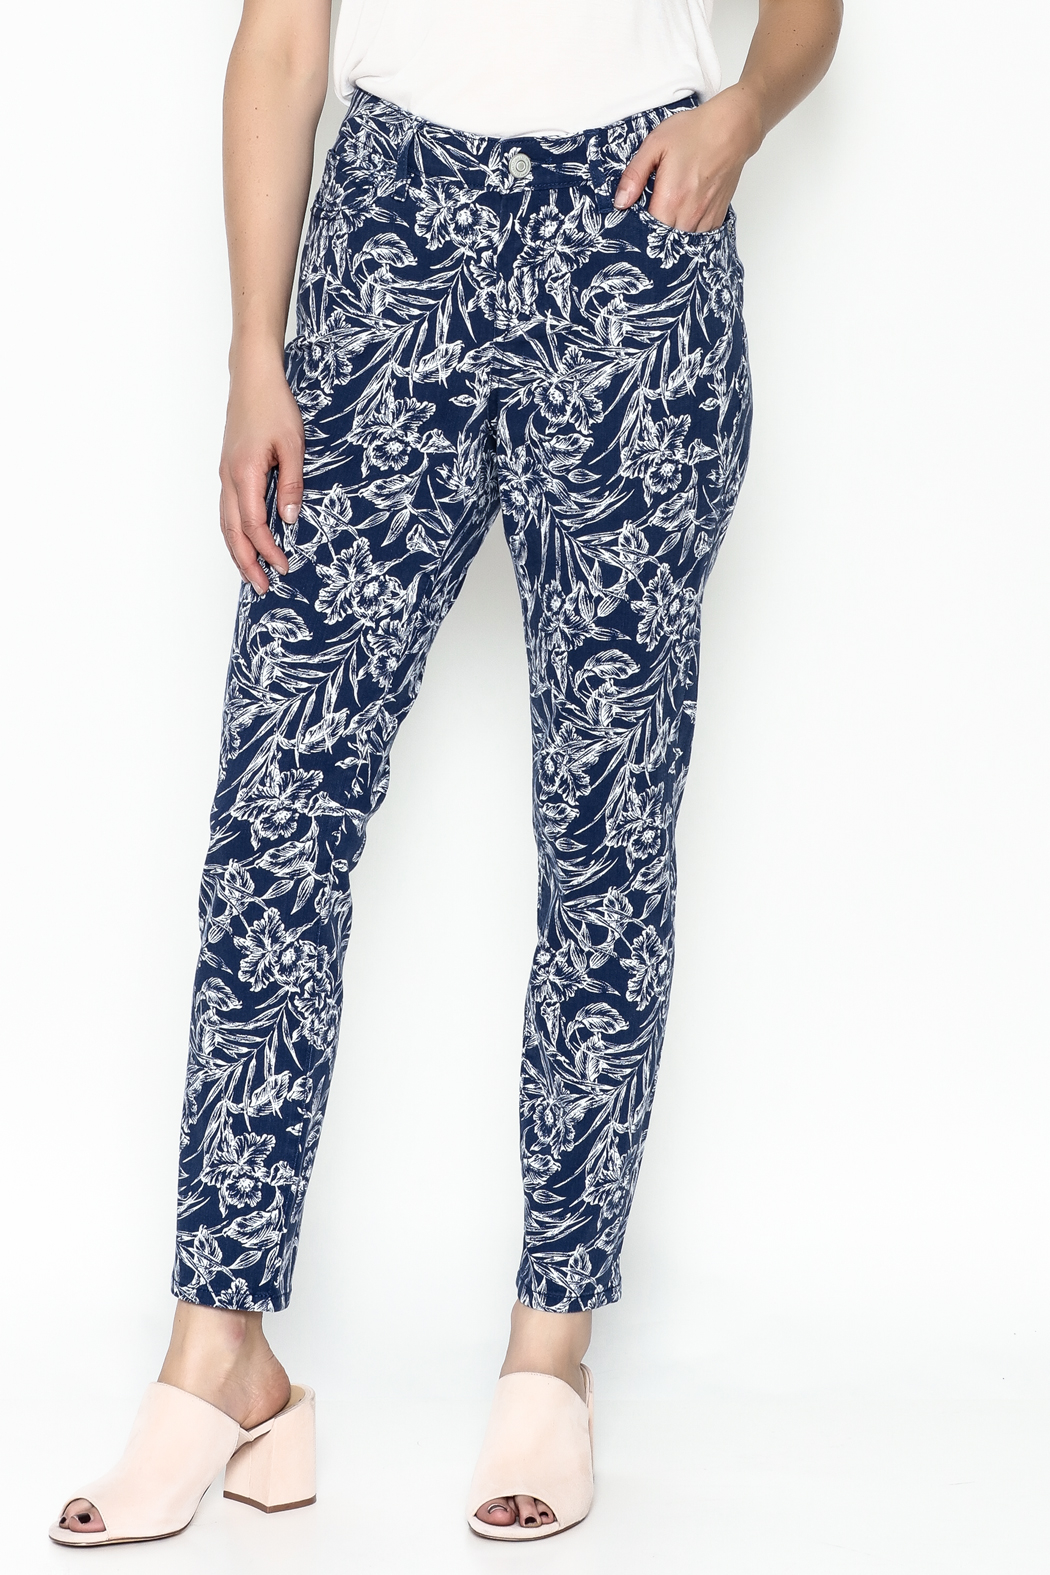 Tommy Bahama Hibiscus Print Jeans - Main Image